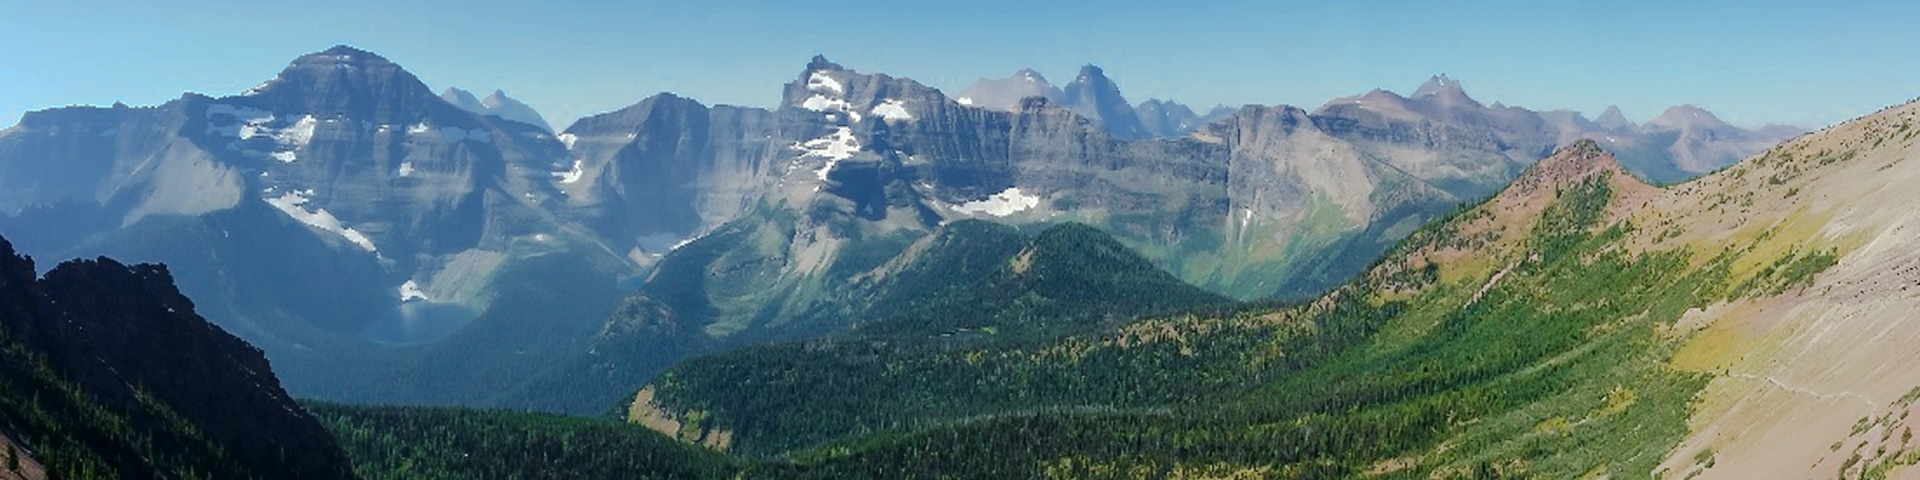 Panoramic views from the Carthew - Alderson hike in Waterton Lakes National Park, Canada